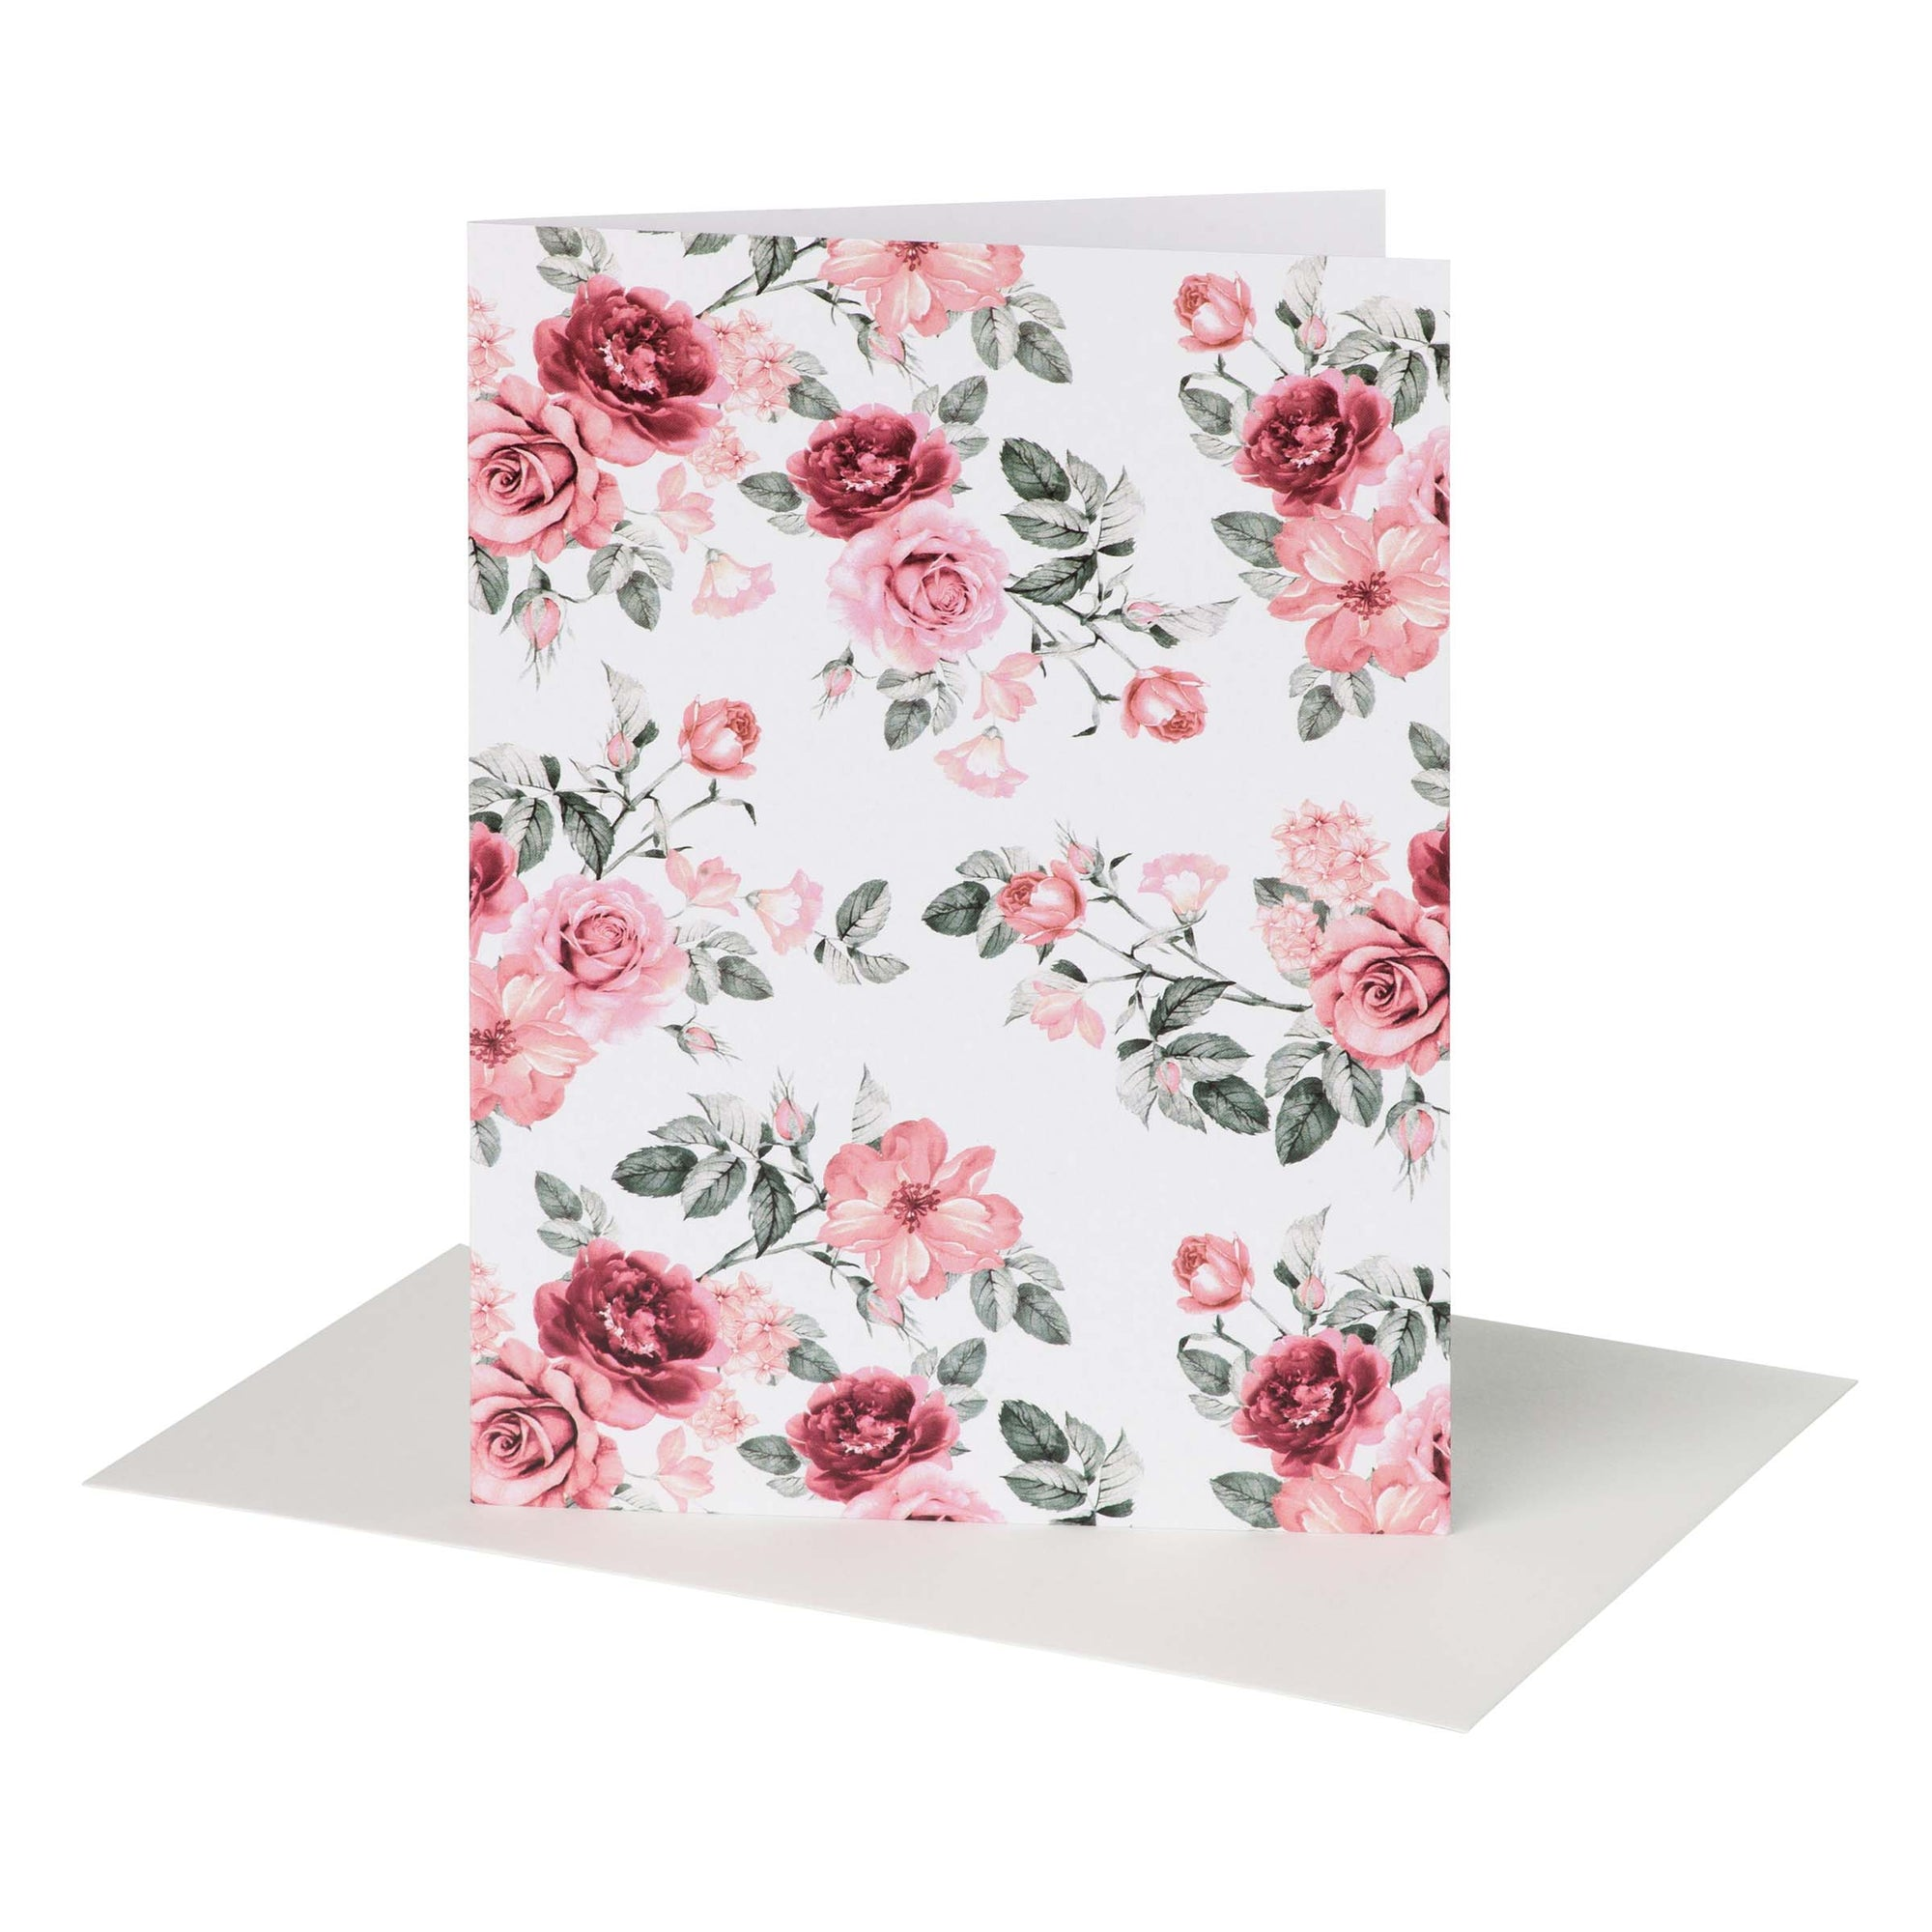 Buy Audrey Floral Greeting Card - Tea Rose - Designer Kidz | Special Occasions, Party Wear & Weddings  | Sizes 000-16 | Little Girls Party Dresses, Tutu Dresses, Flower Girl Dresses | Pay with Afterpay | Free AU Delivery Over $80